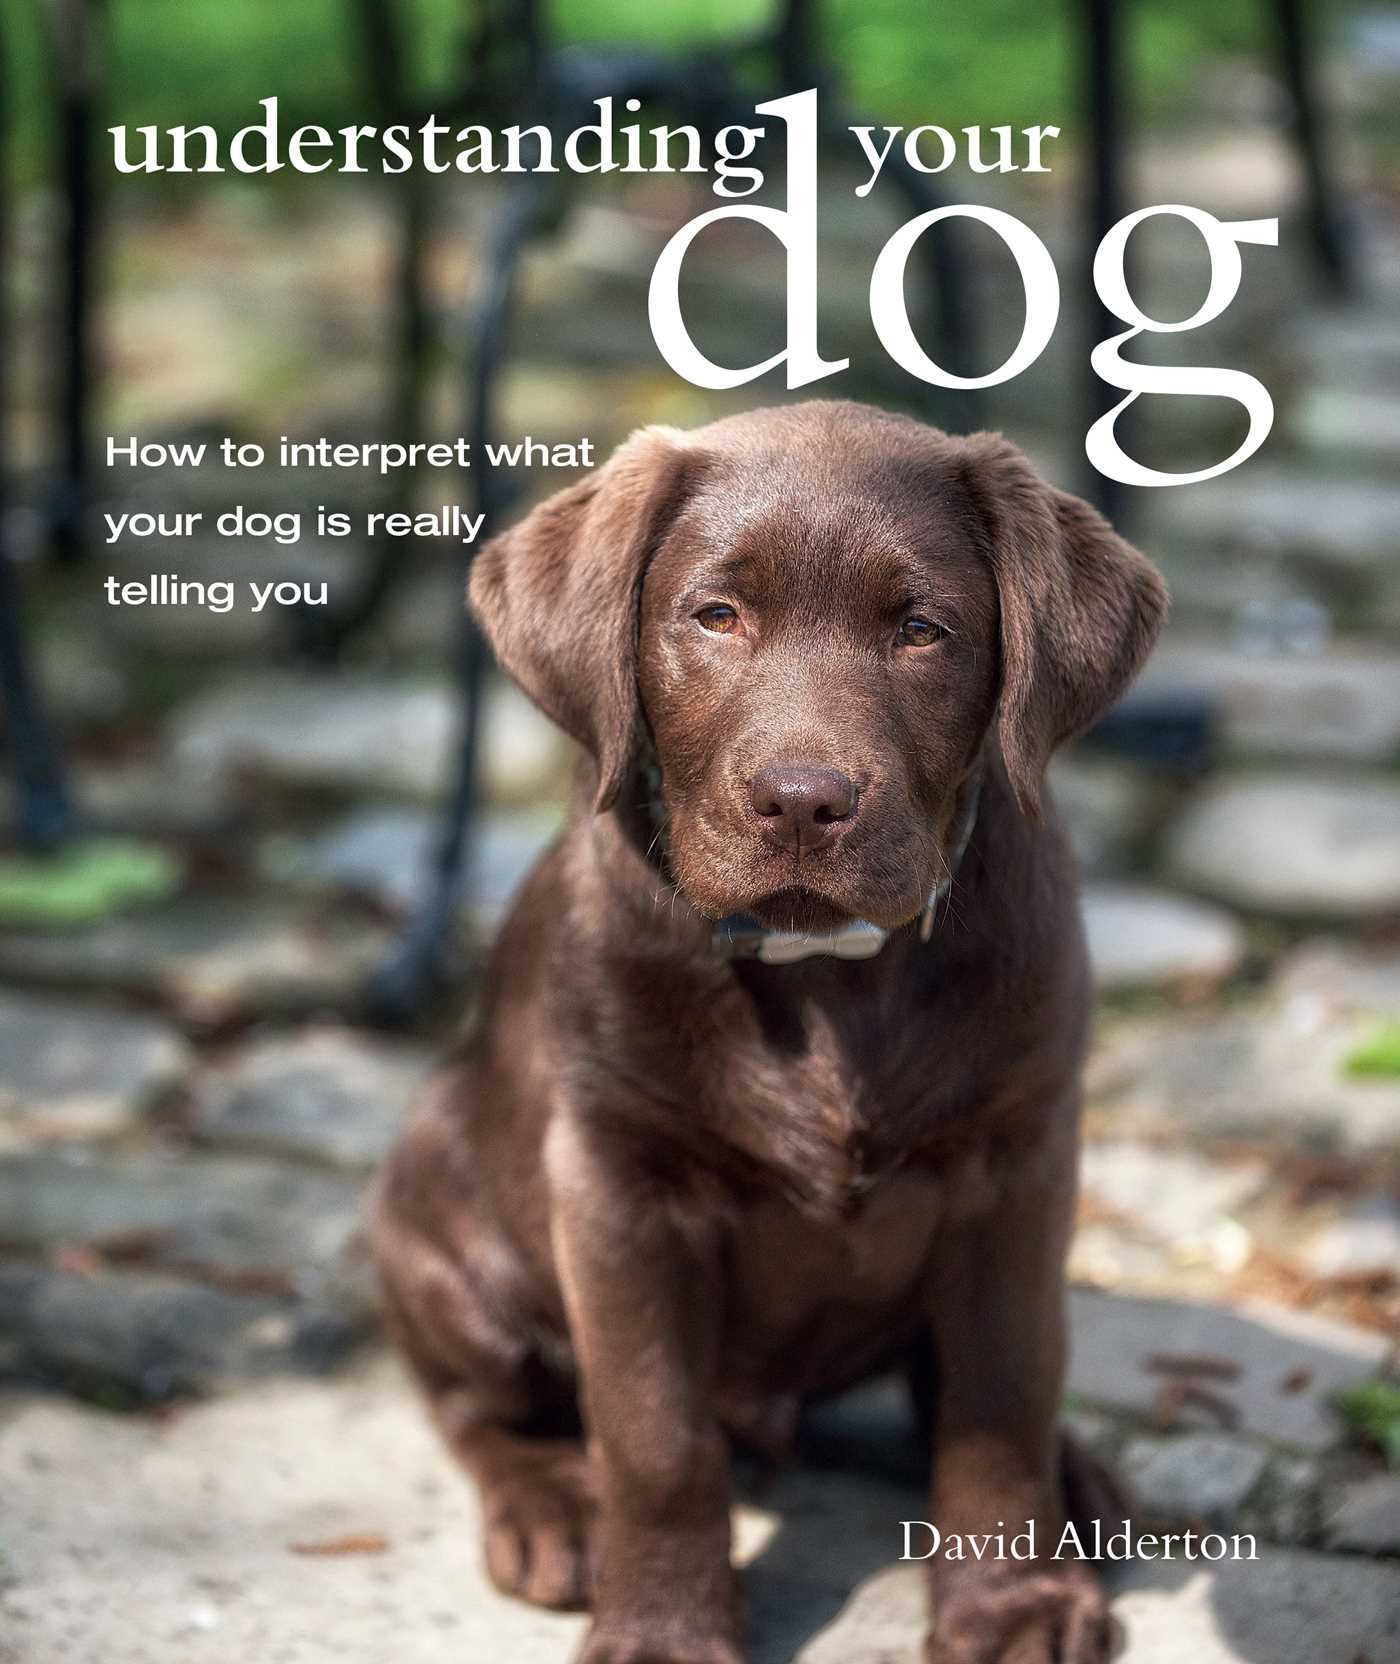 Understanding Your Dog How to interpret what your dog is really telling you